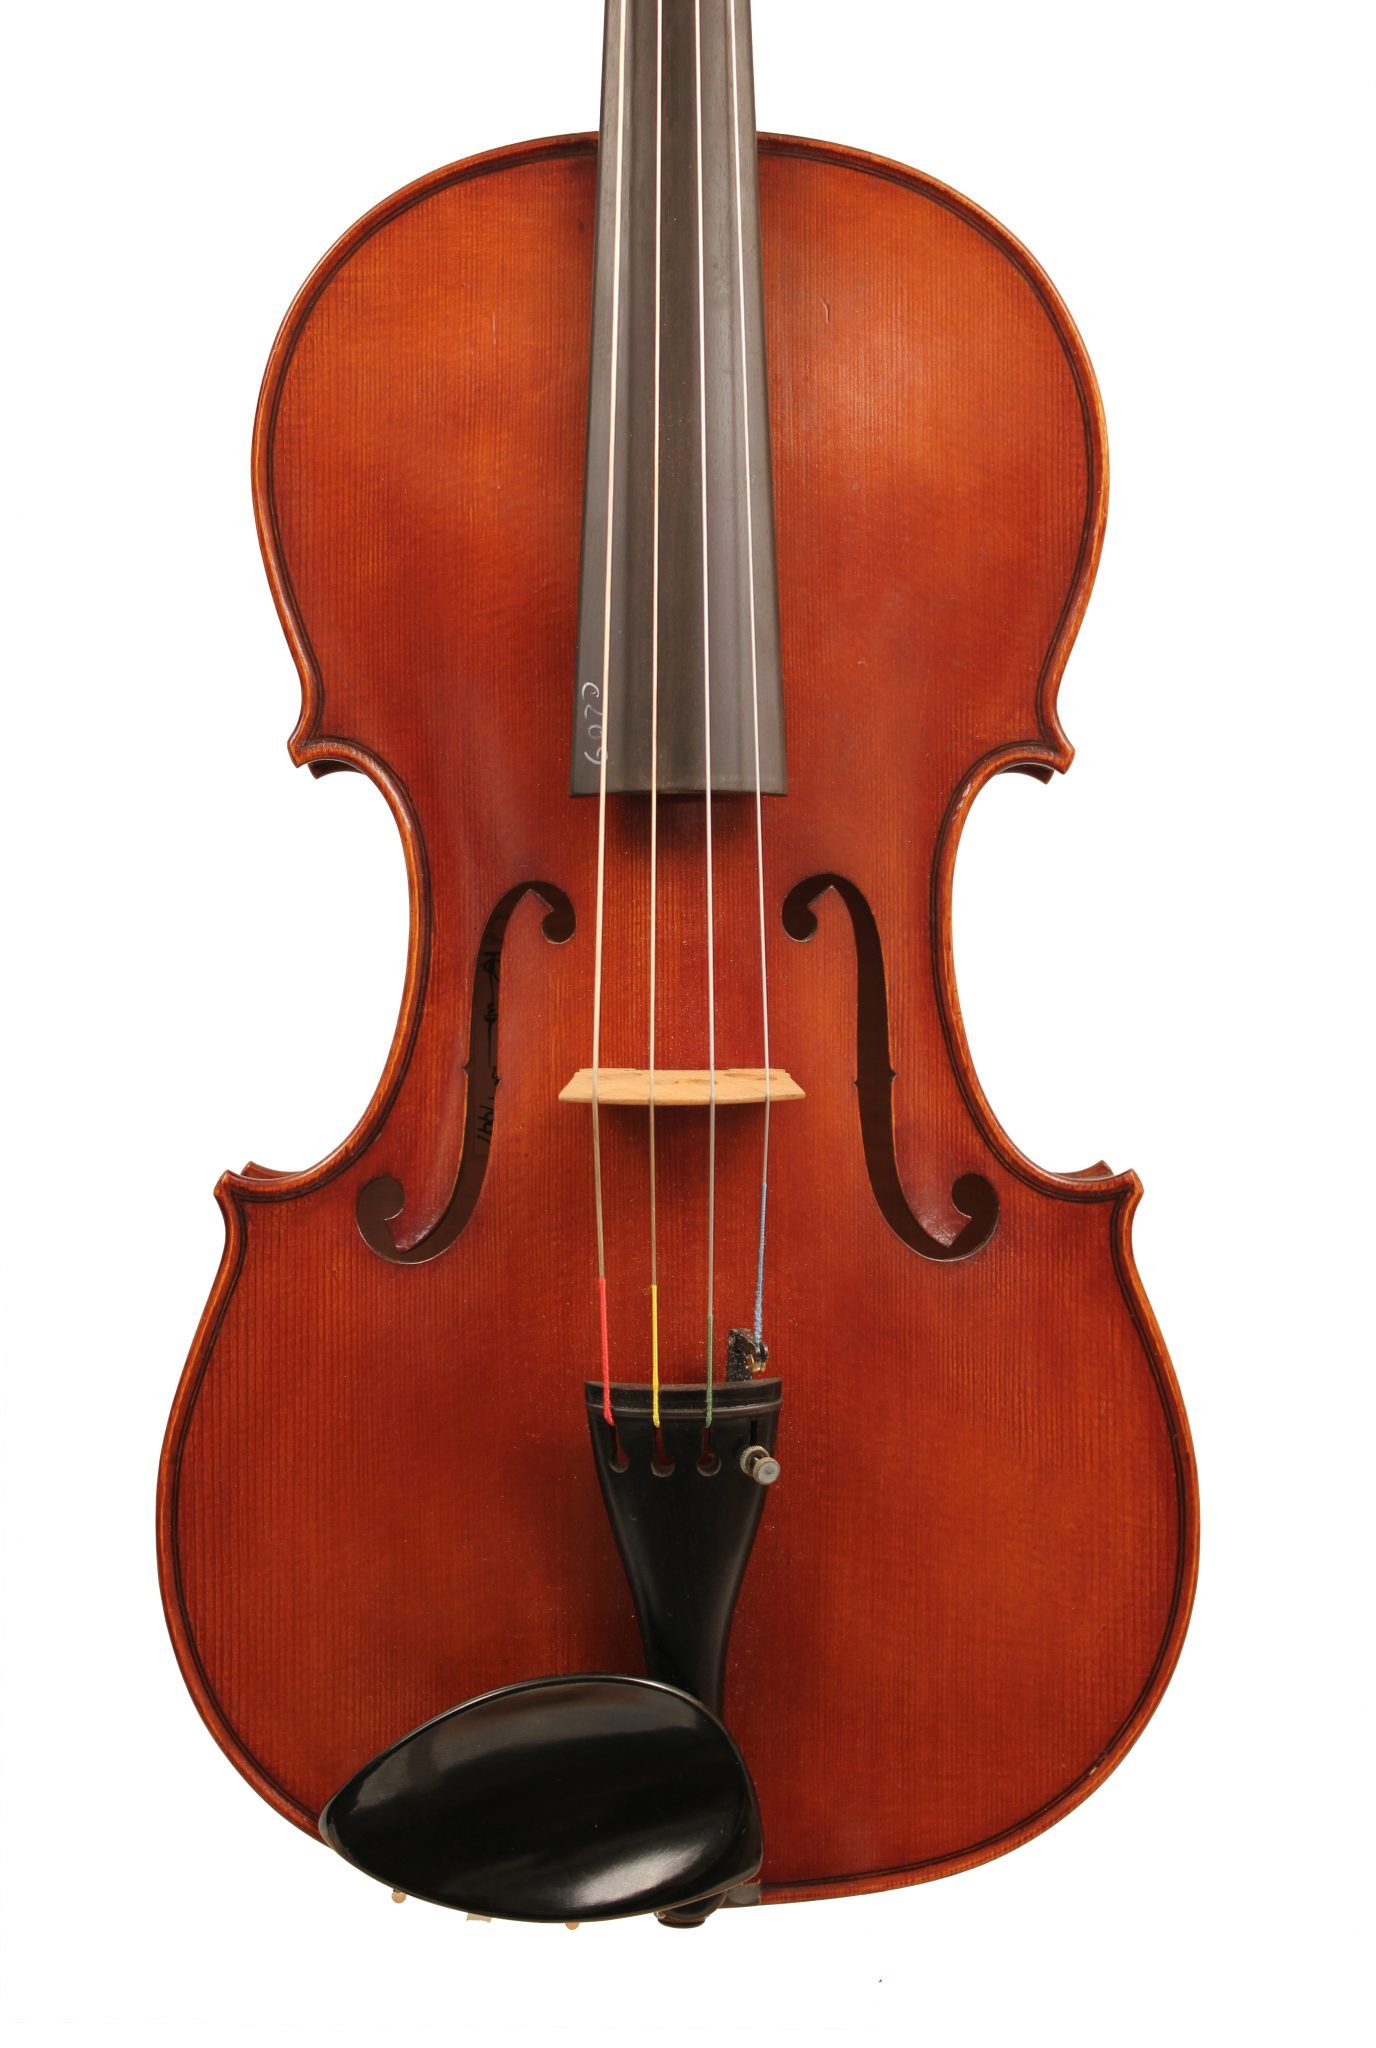 Viola by Andrew Carruthers 1991 for sale at Bridgewood and Neitzert London